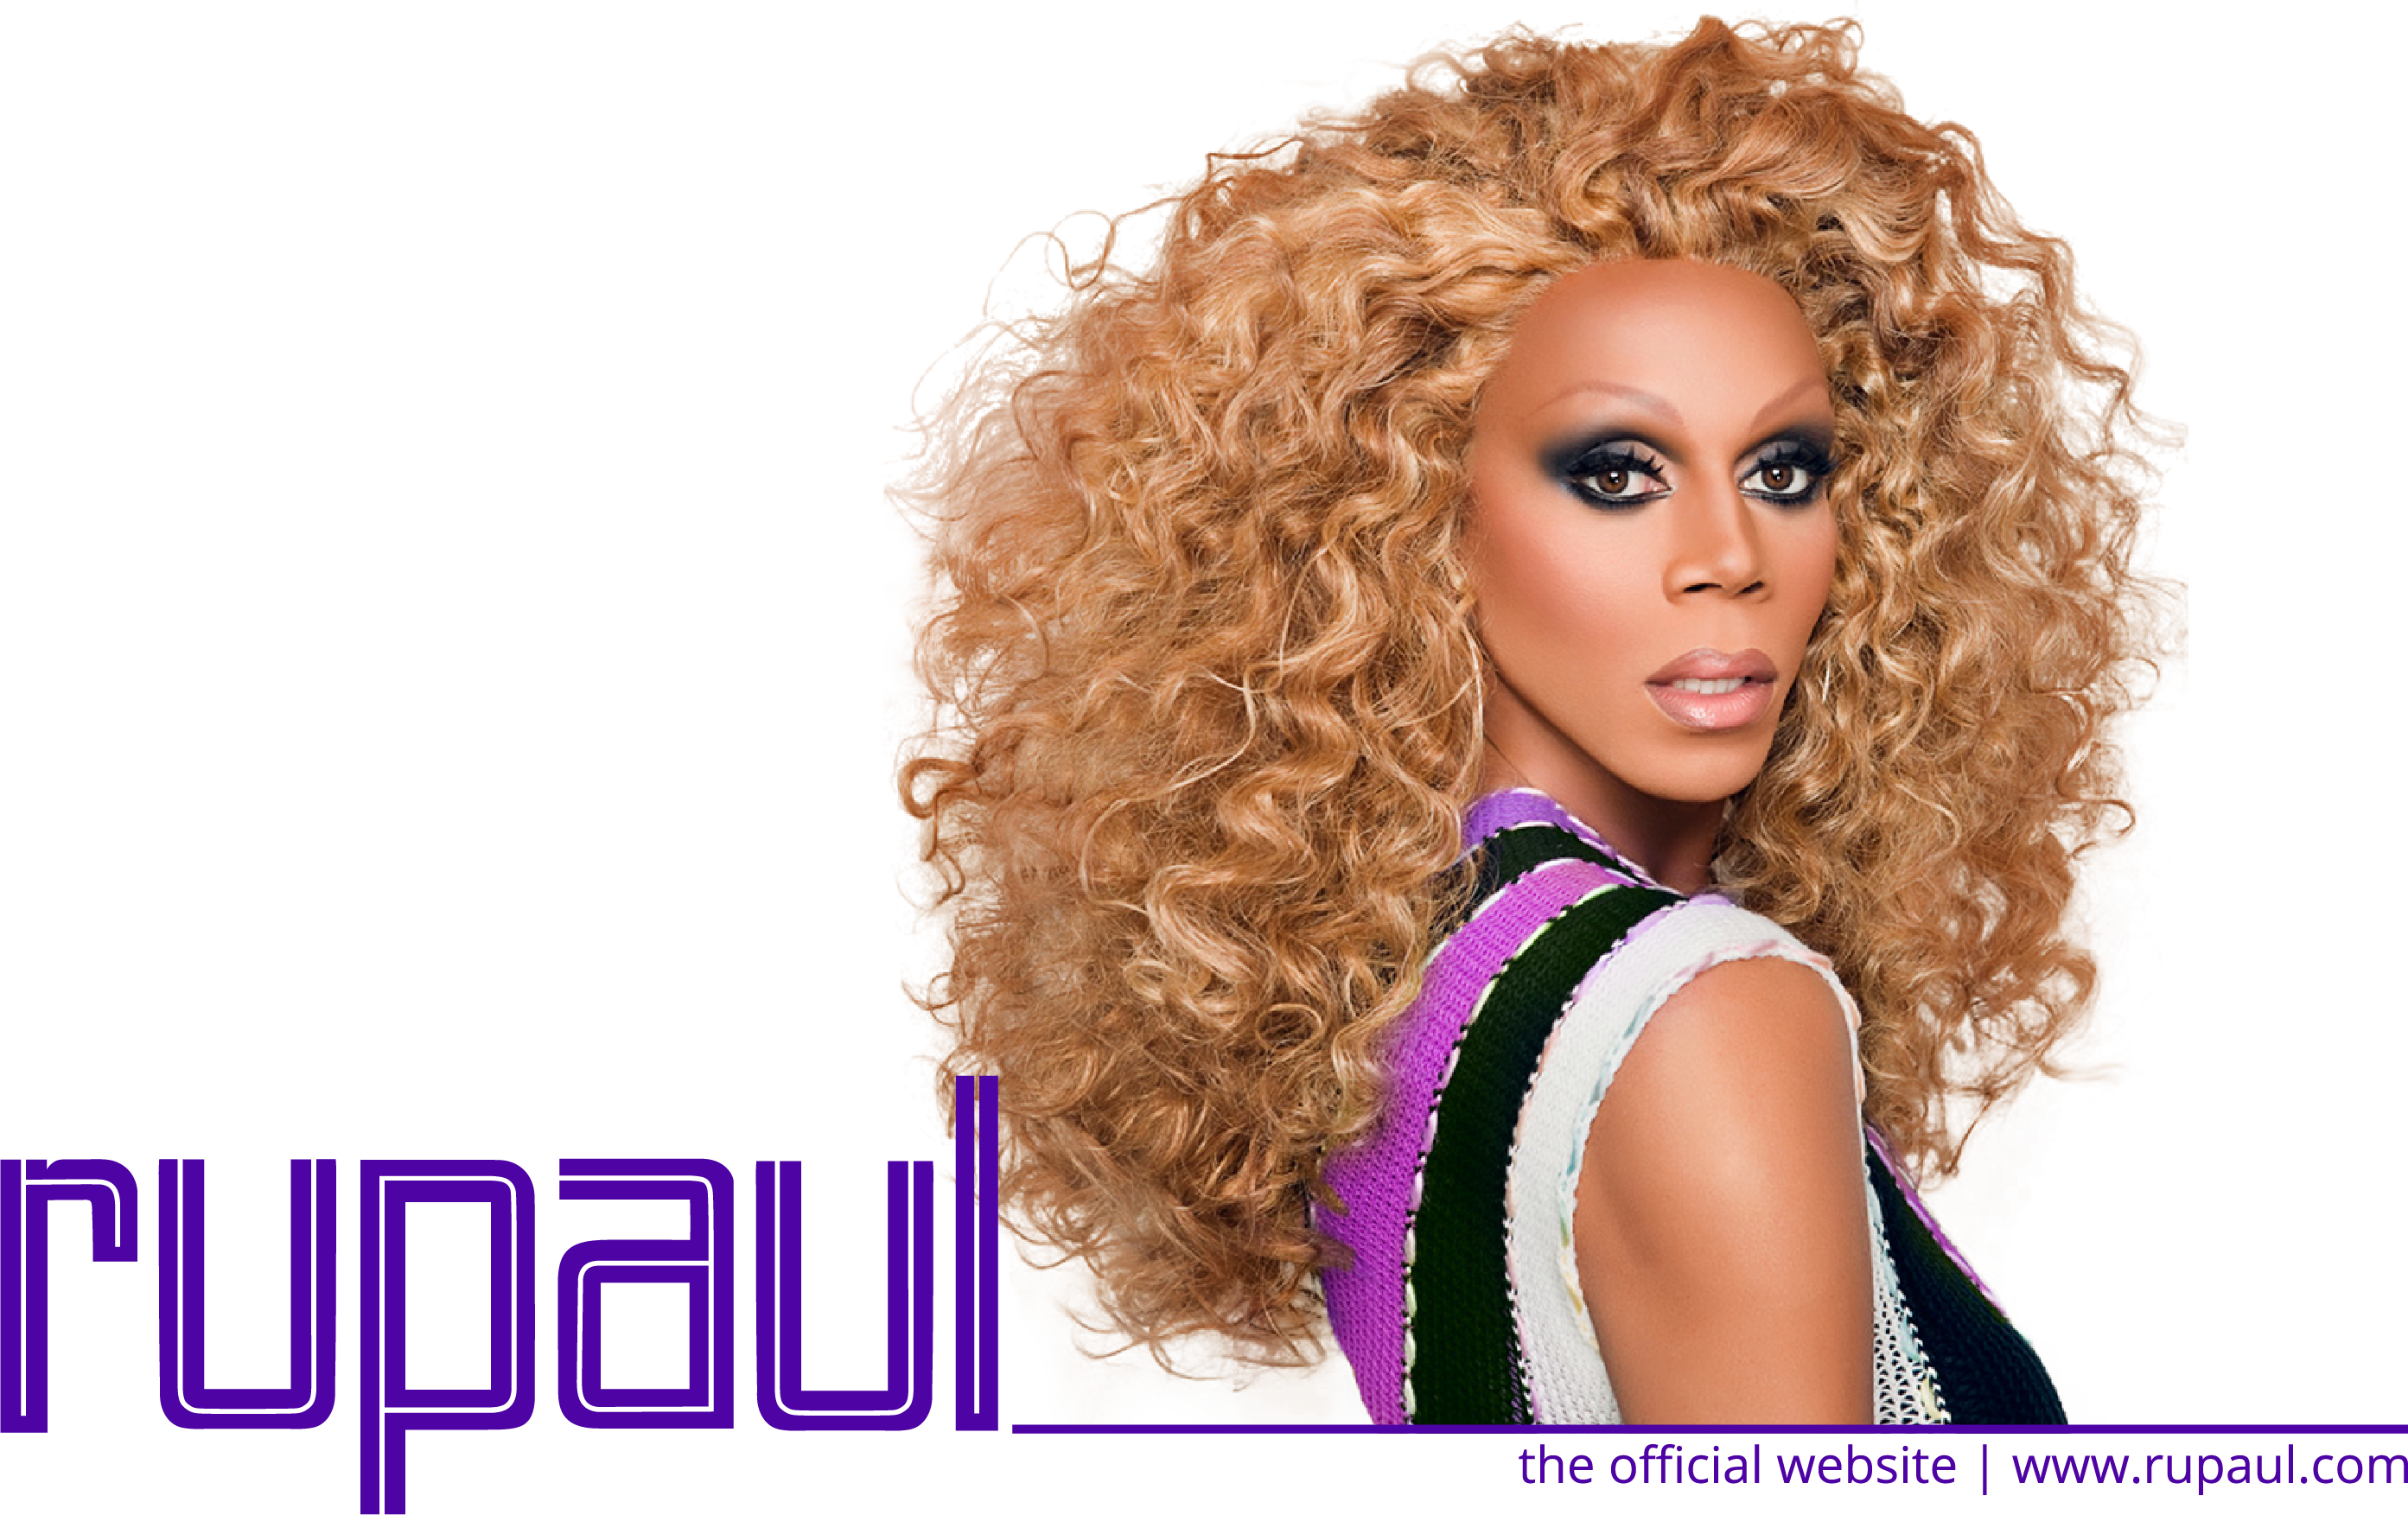 Drag queen wig png. Home rupaul official site